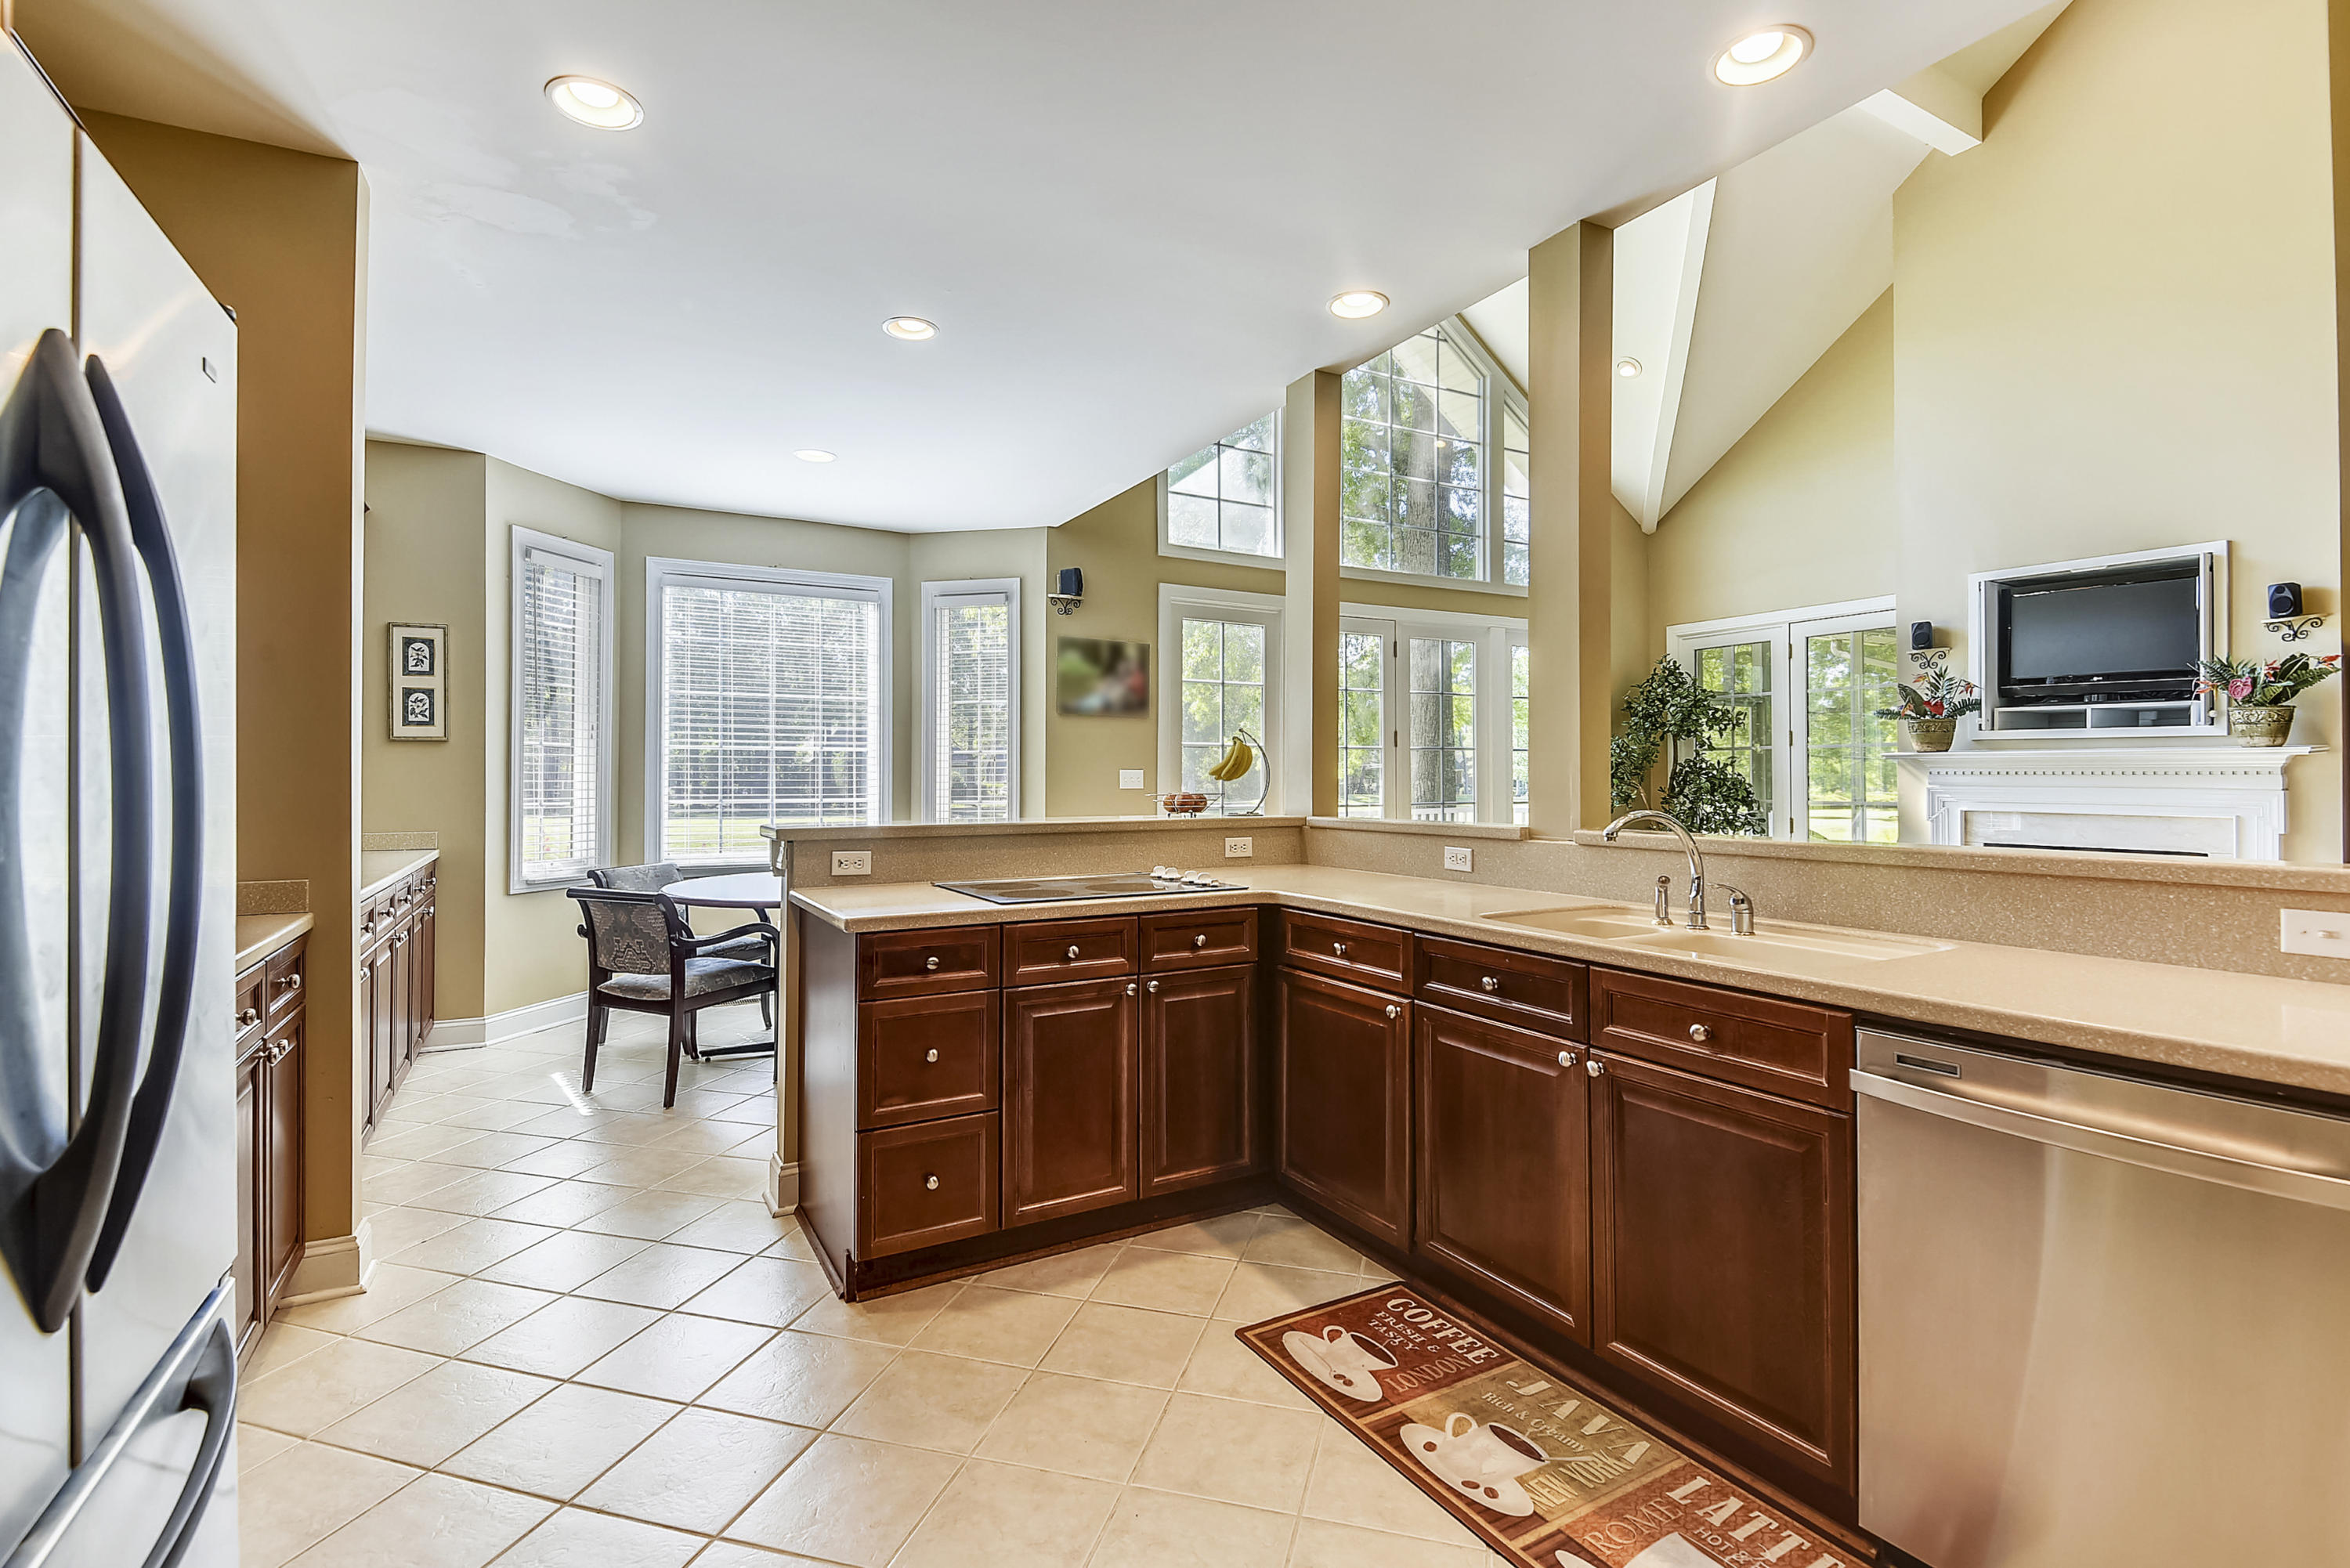 Coosaw Creek Country Club Homes For Sale - 8855 Fairway Woods, North Charleston, SC - 1